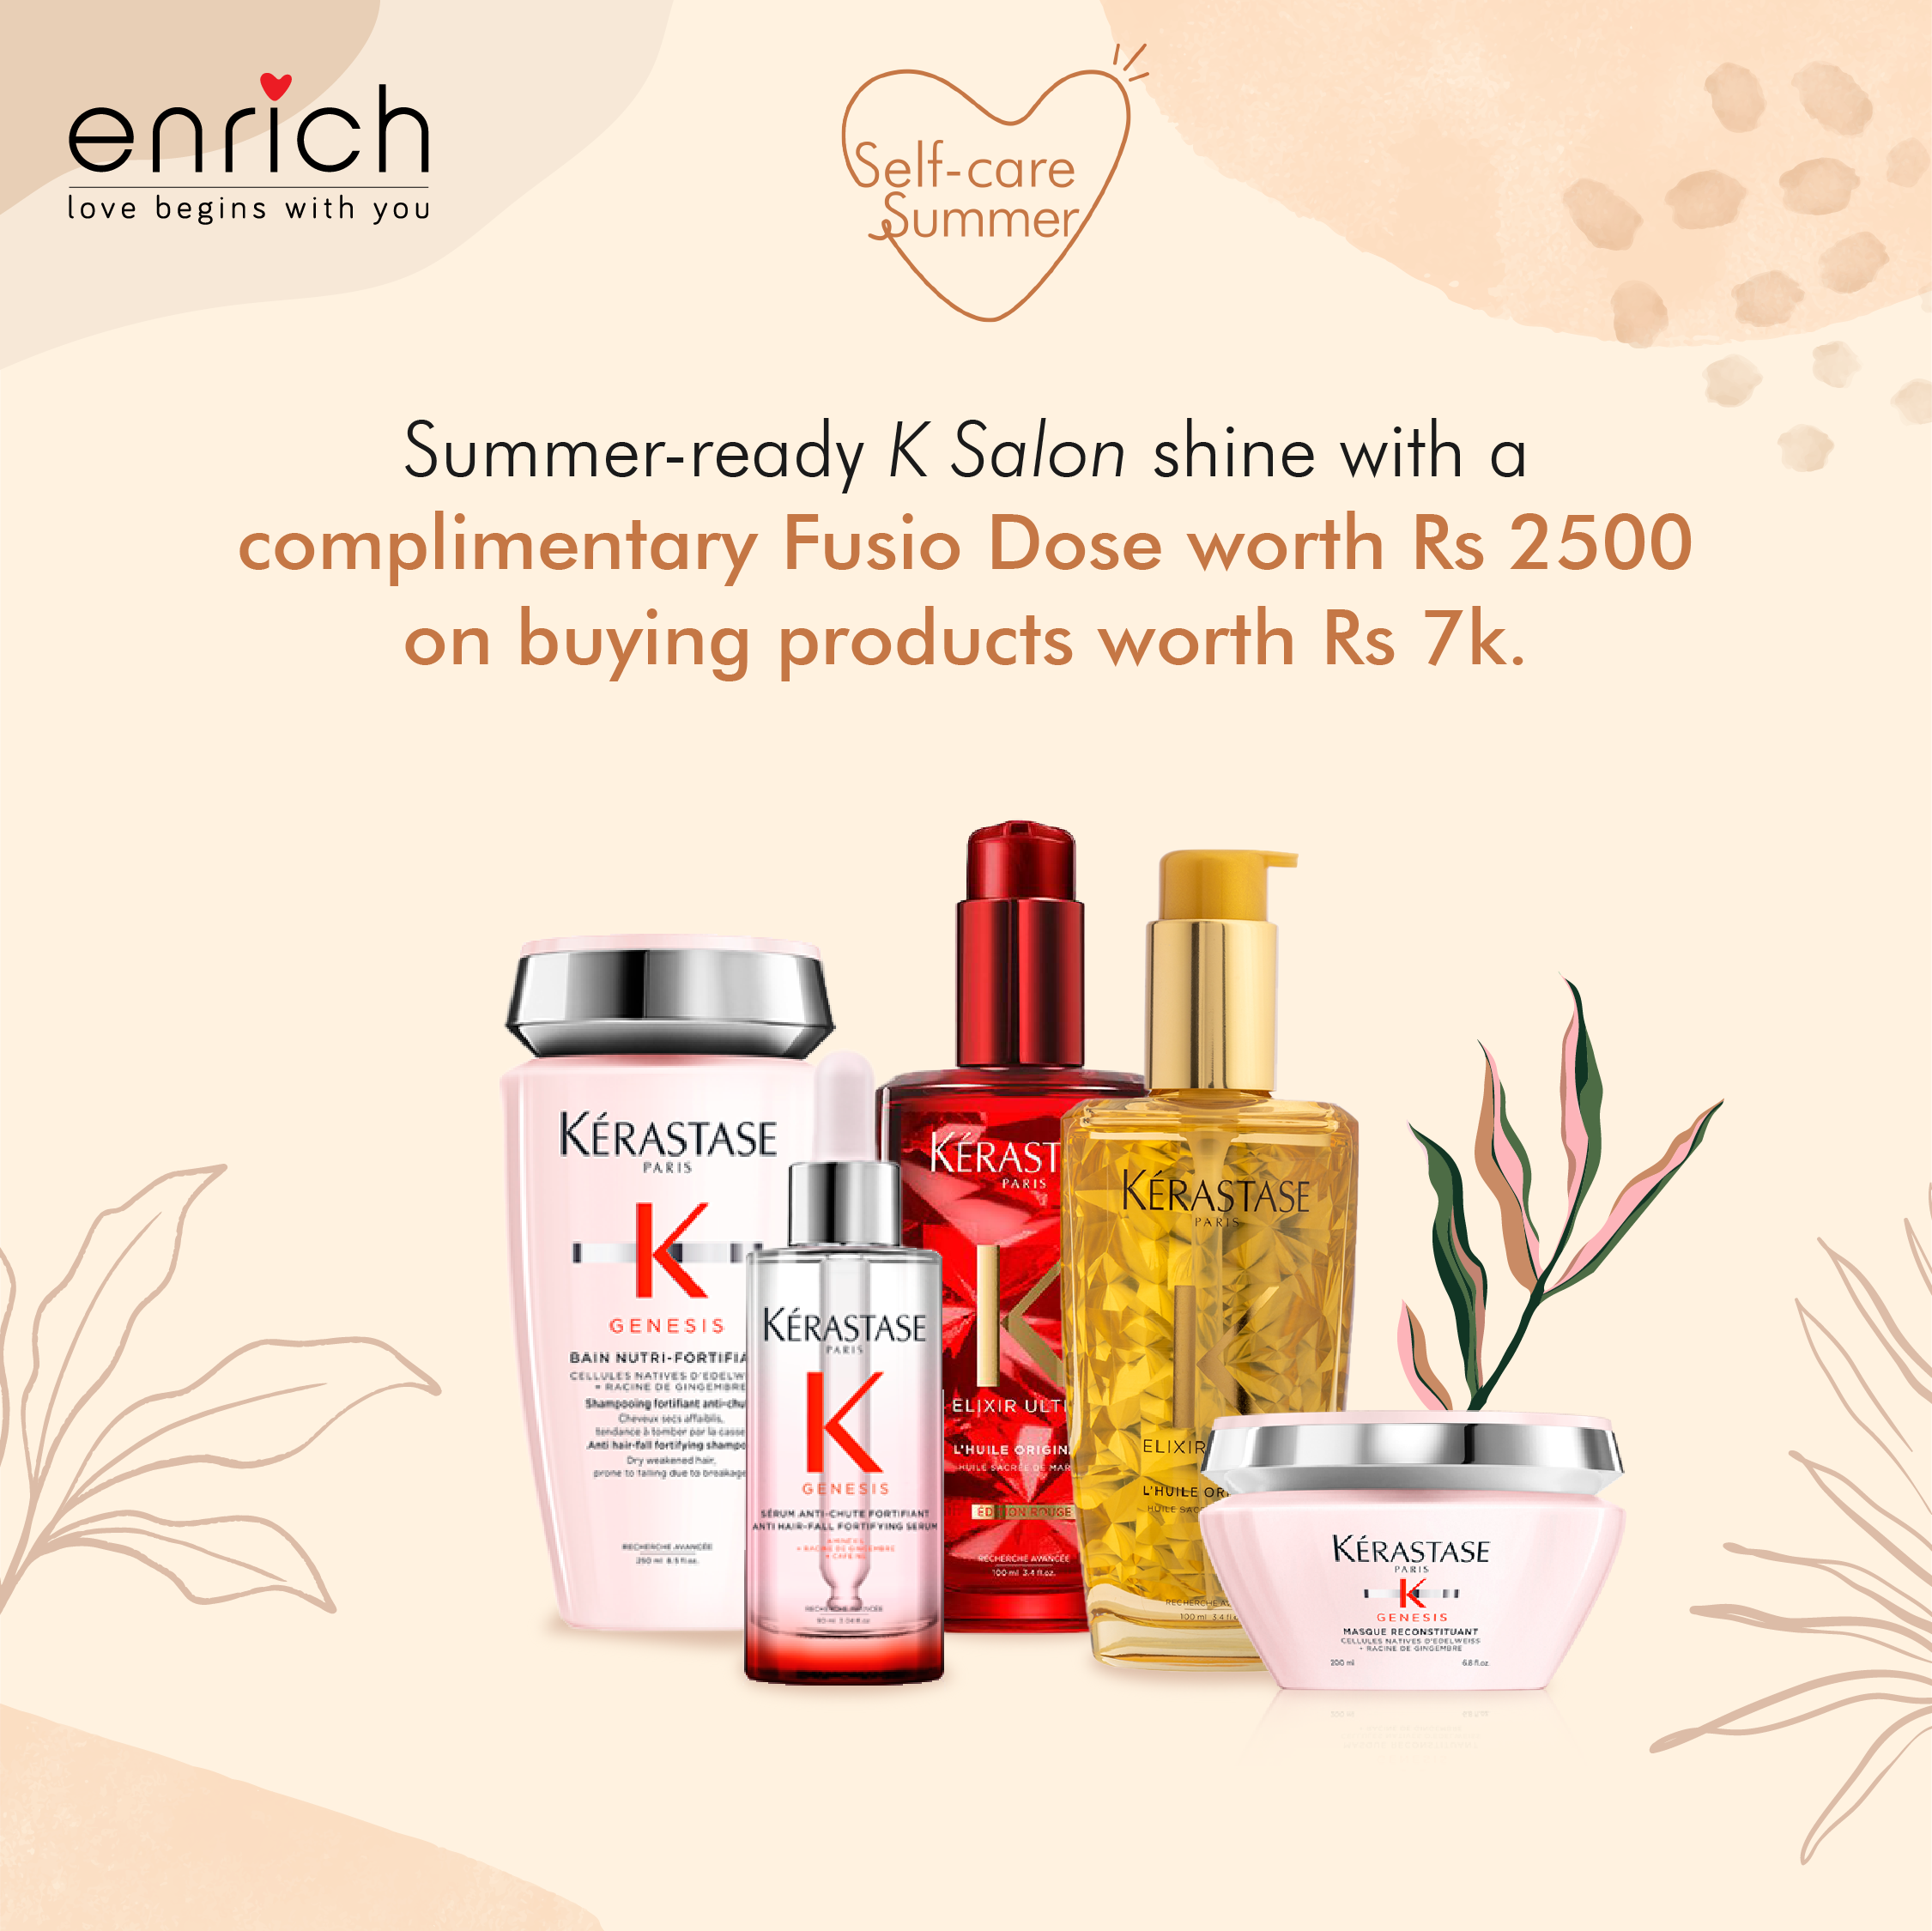 Get your hair summer ready with a COMPLIMENTARY #KSalon ritual